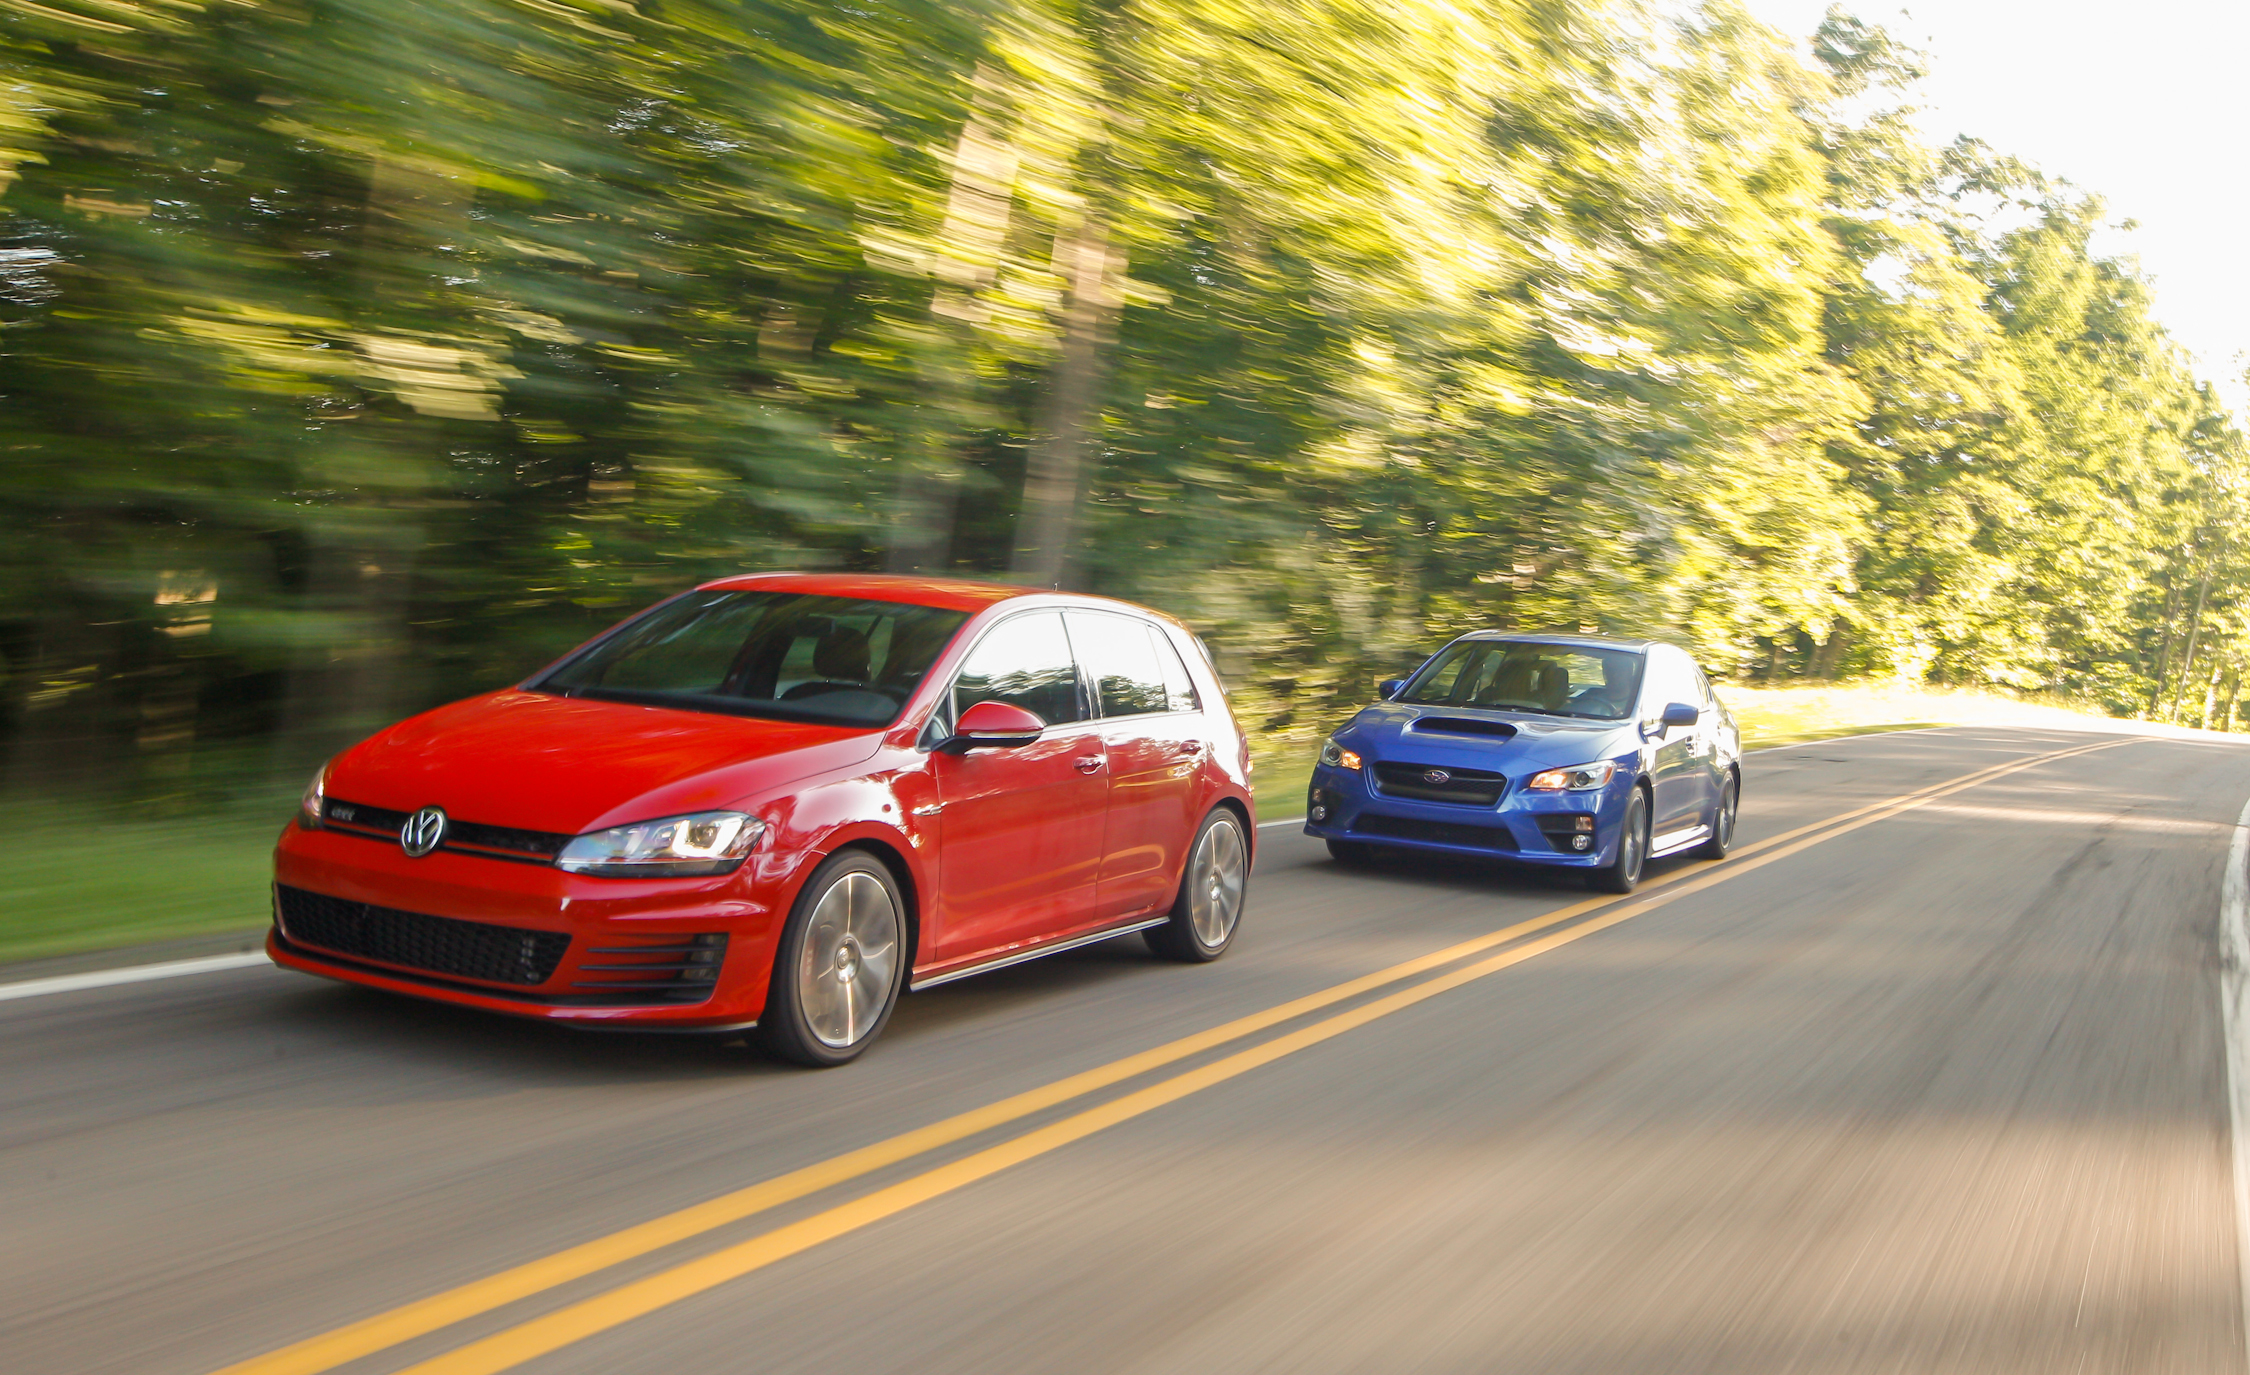 Volkswagen GTI vs 2015 Subaru WRX Comparison